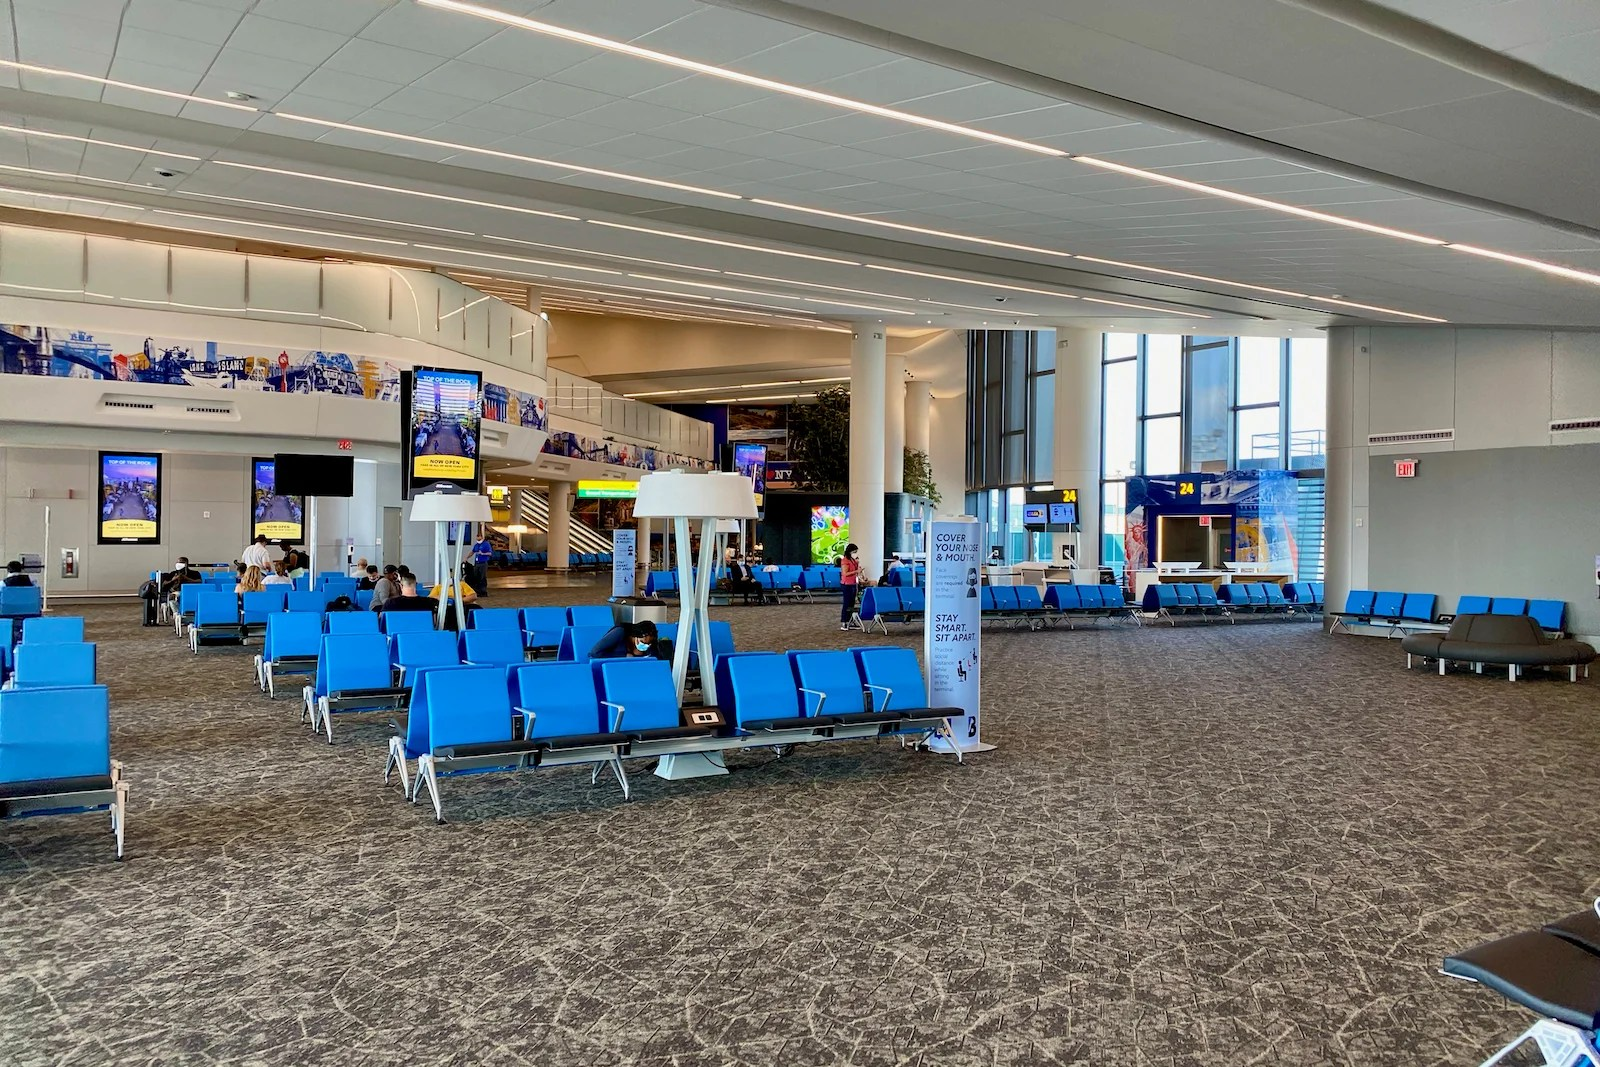 First look at American Airlines' brand-new terminal at LGA